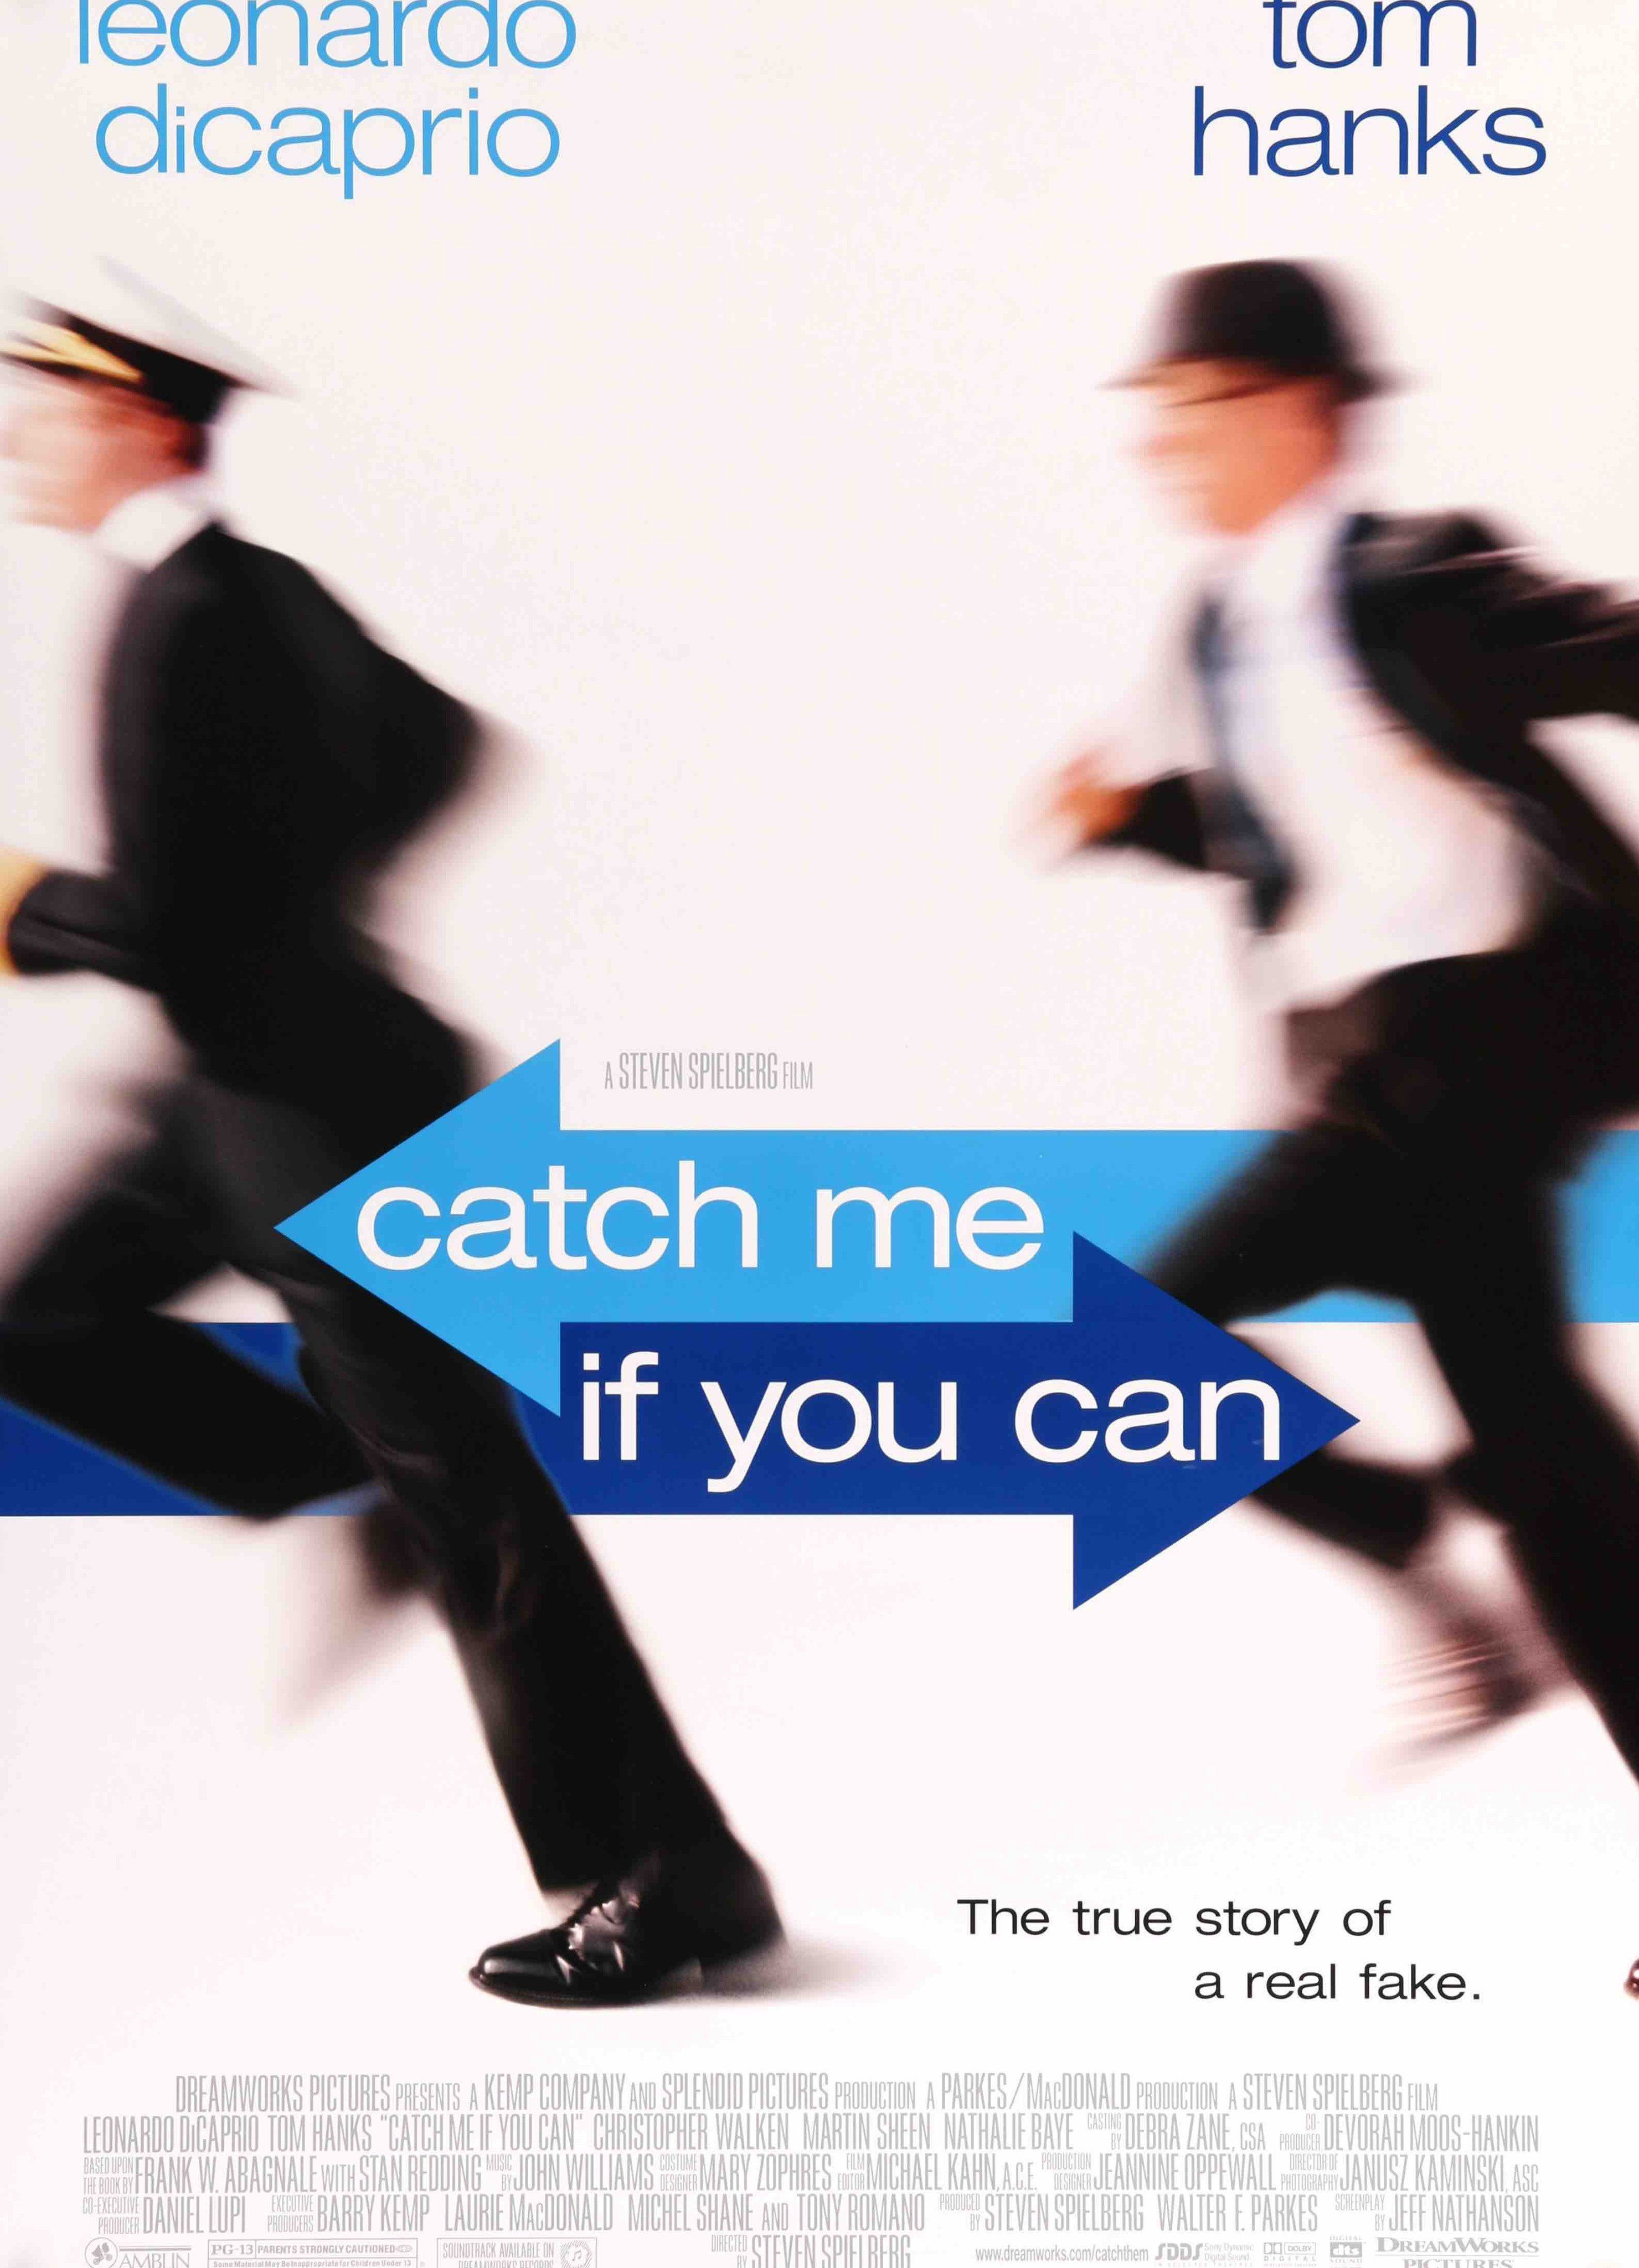 Catch Me If You Can 2002 Steven Spielberg Movies Leonardo Dicaprio Movie Posters